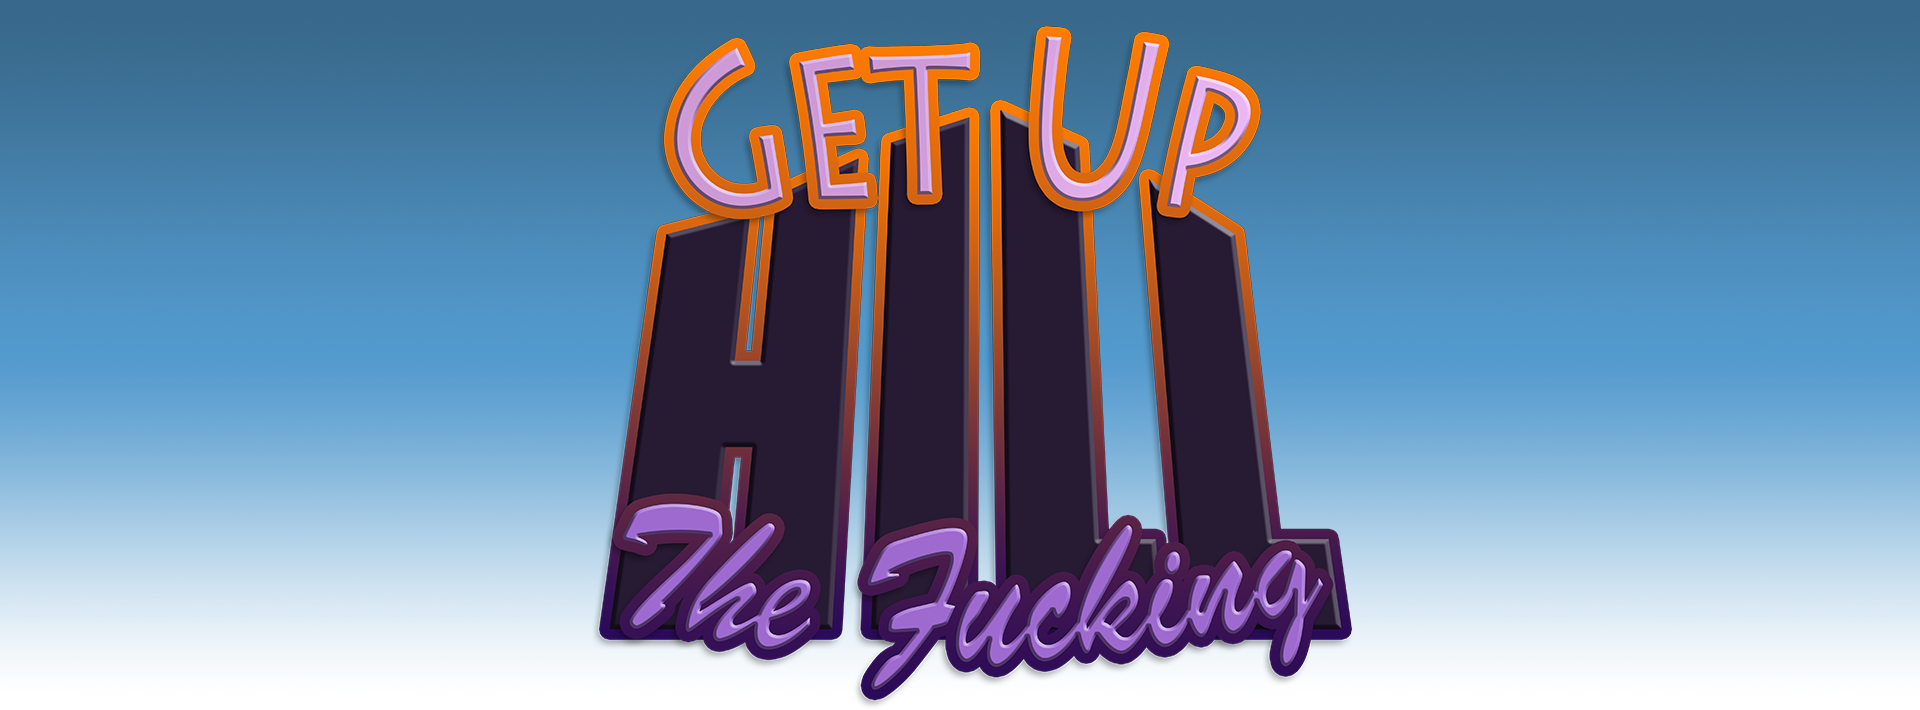 Get Up The Fucking Hill